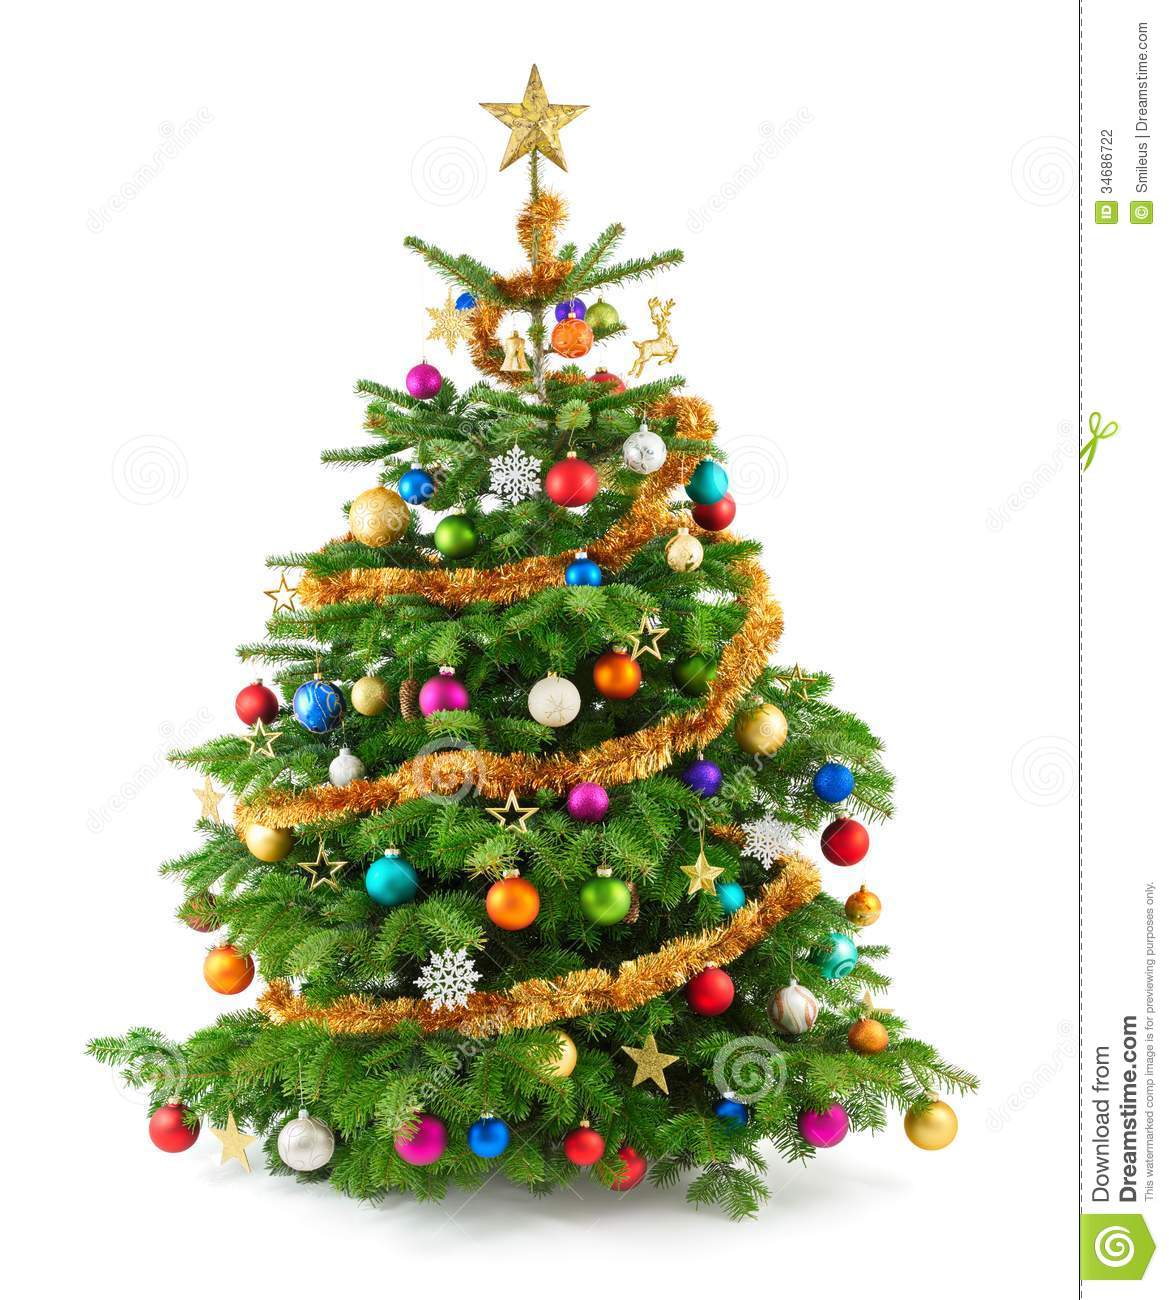 Lush Christmas Tree With Colorful Ornaments Stock